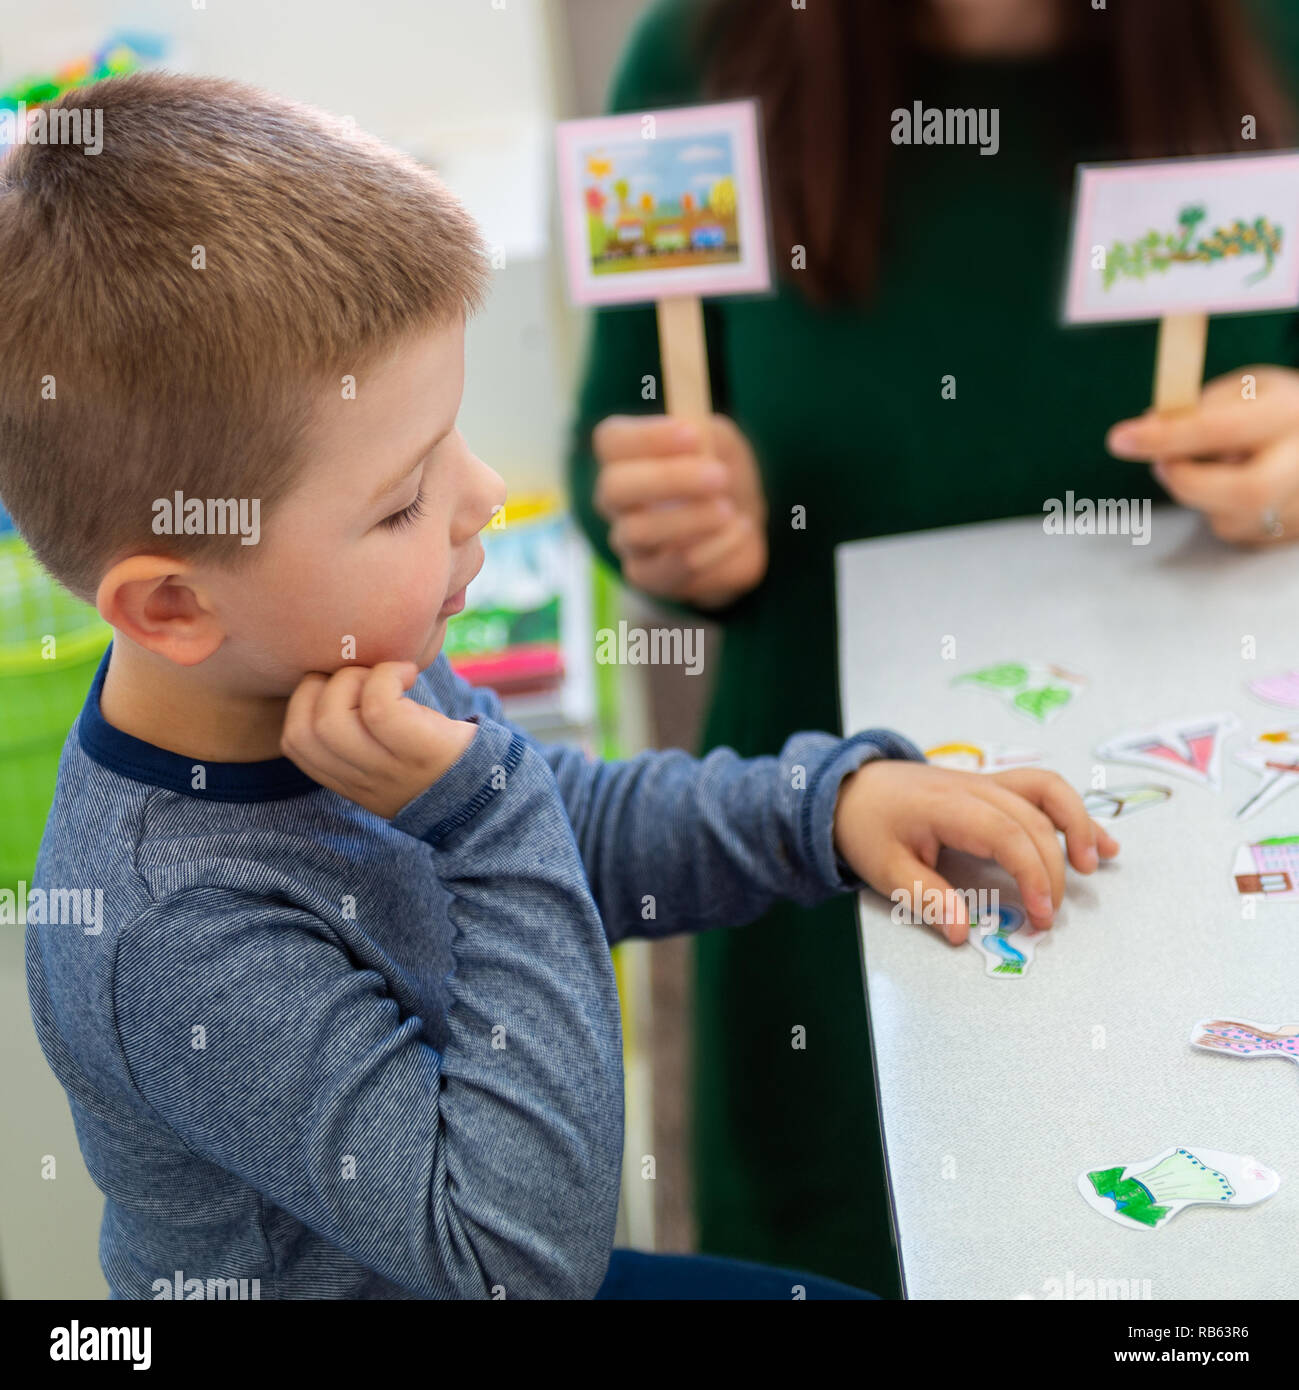 Young boy in speech therapy office. Preschooler exercising correct pronunciation with speech therapist. Child Occupational Therapy Session. - Stock Image